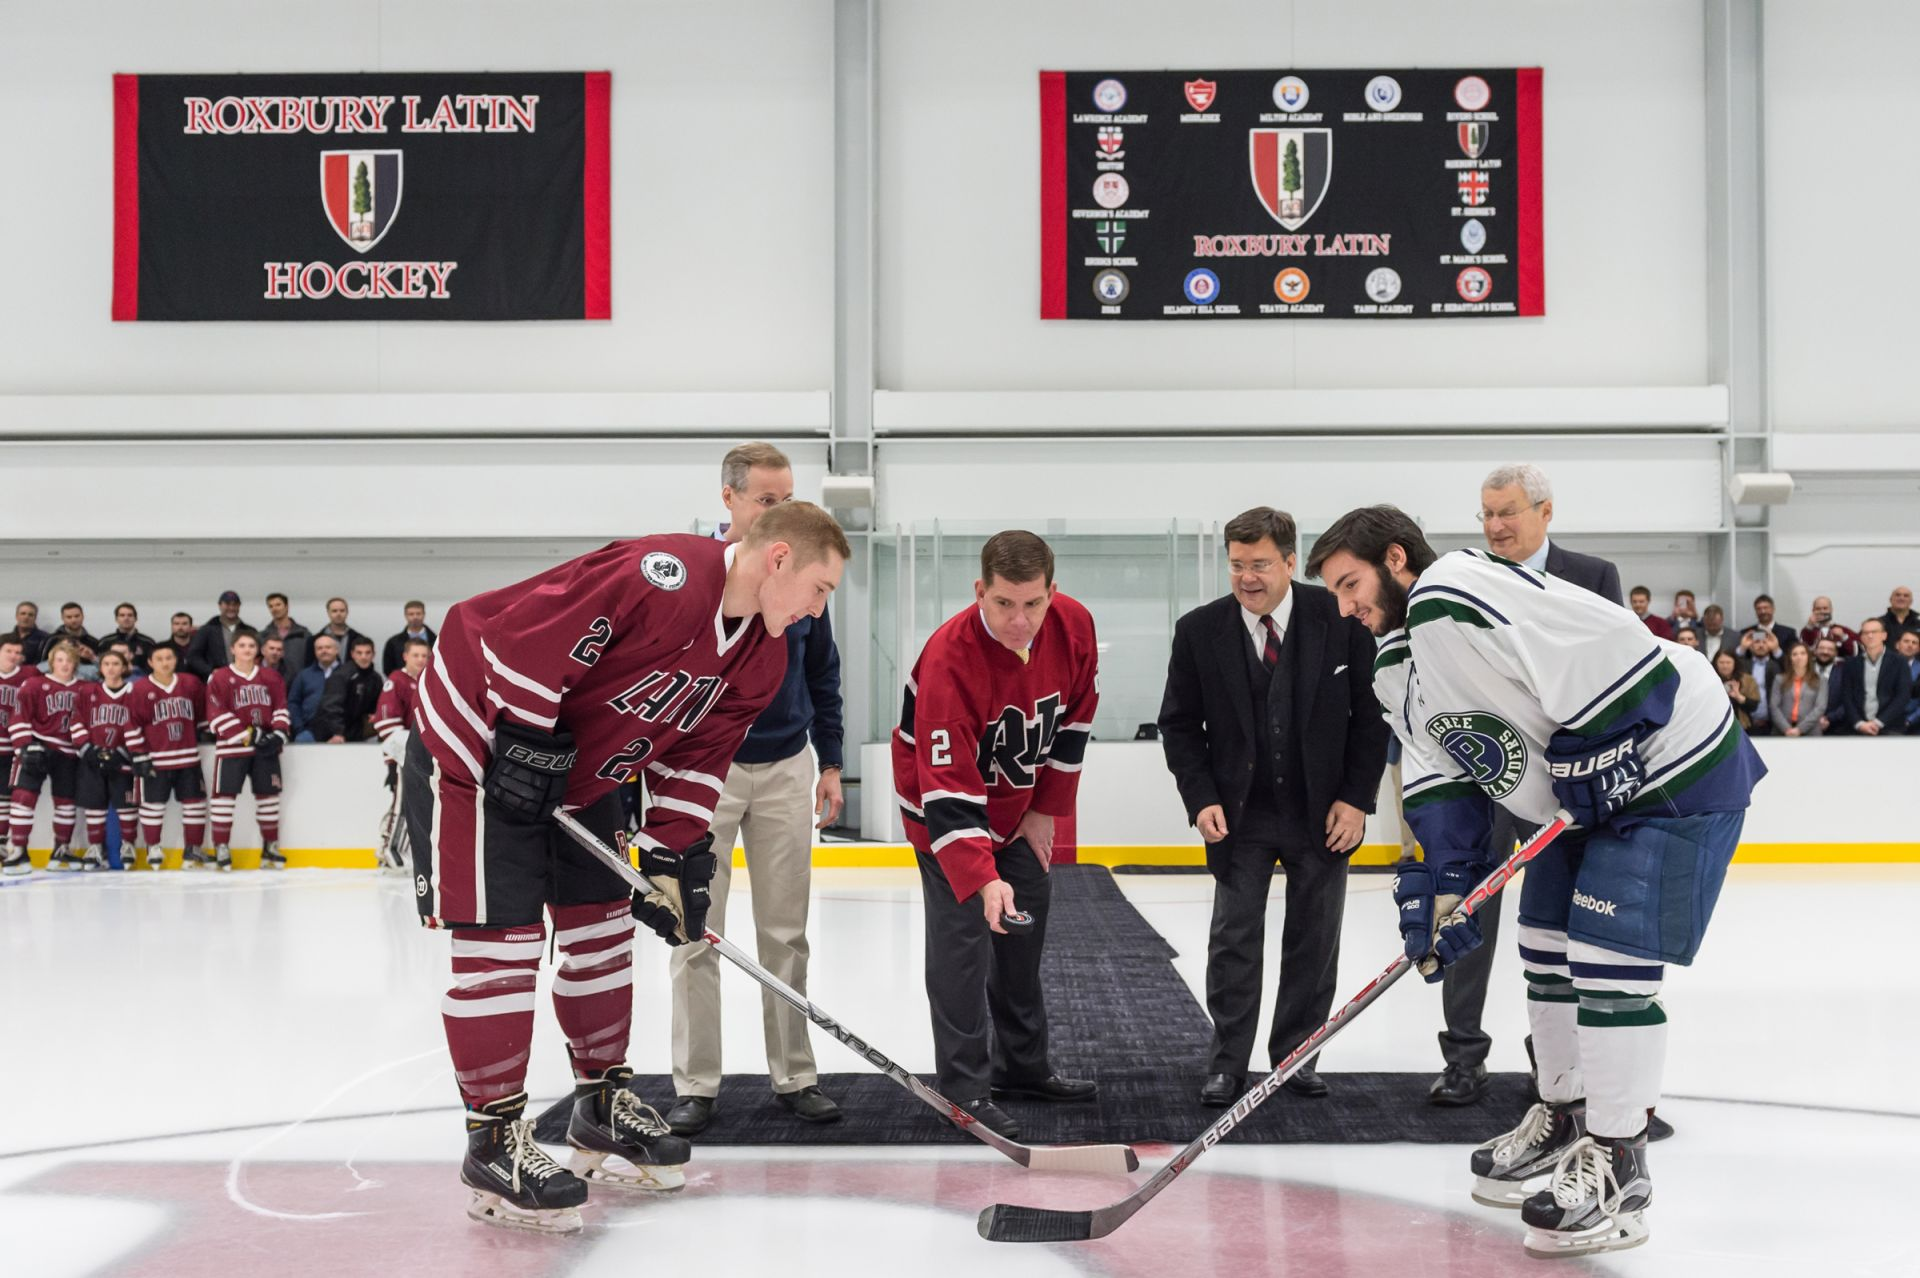 Mayor Marty Walsh drops ceremonial puck